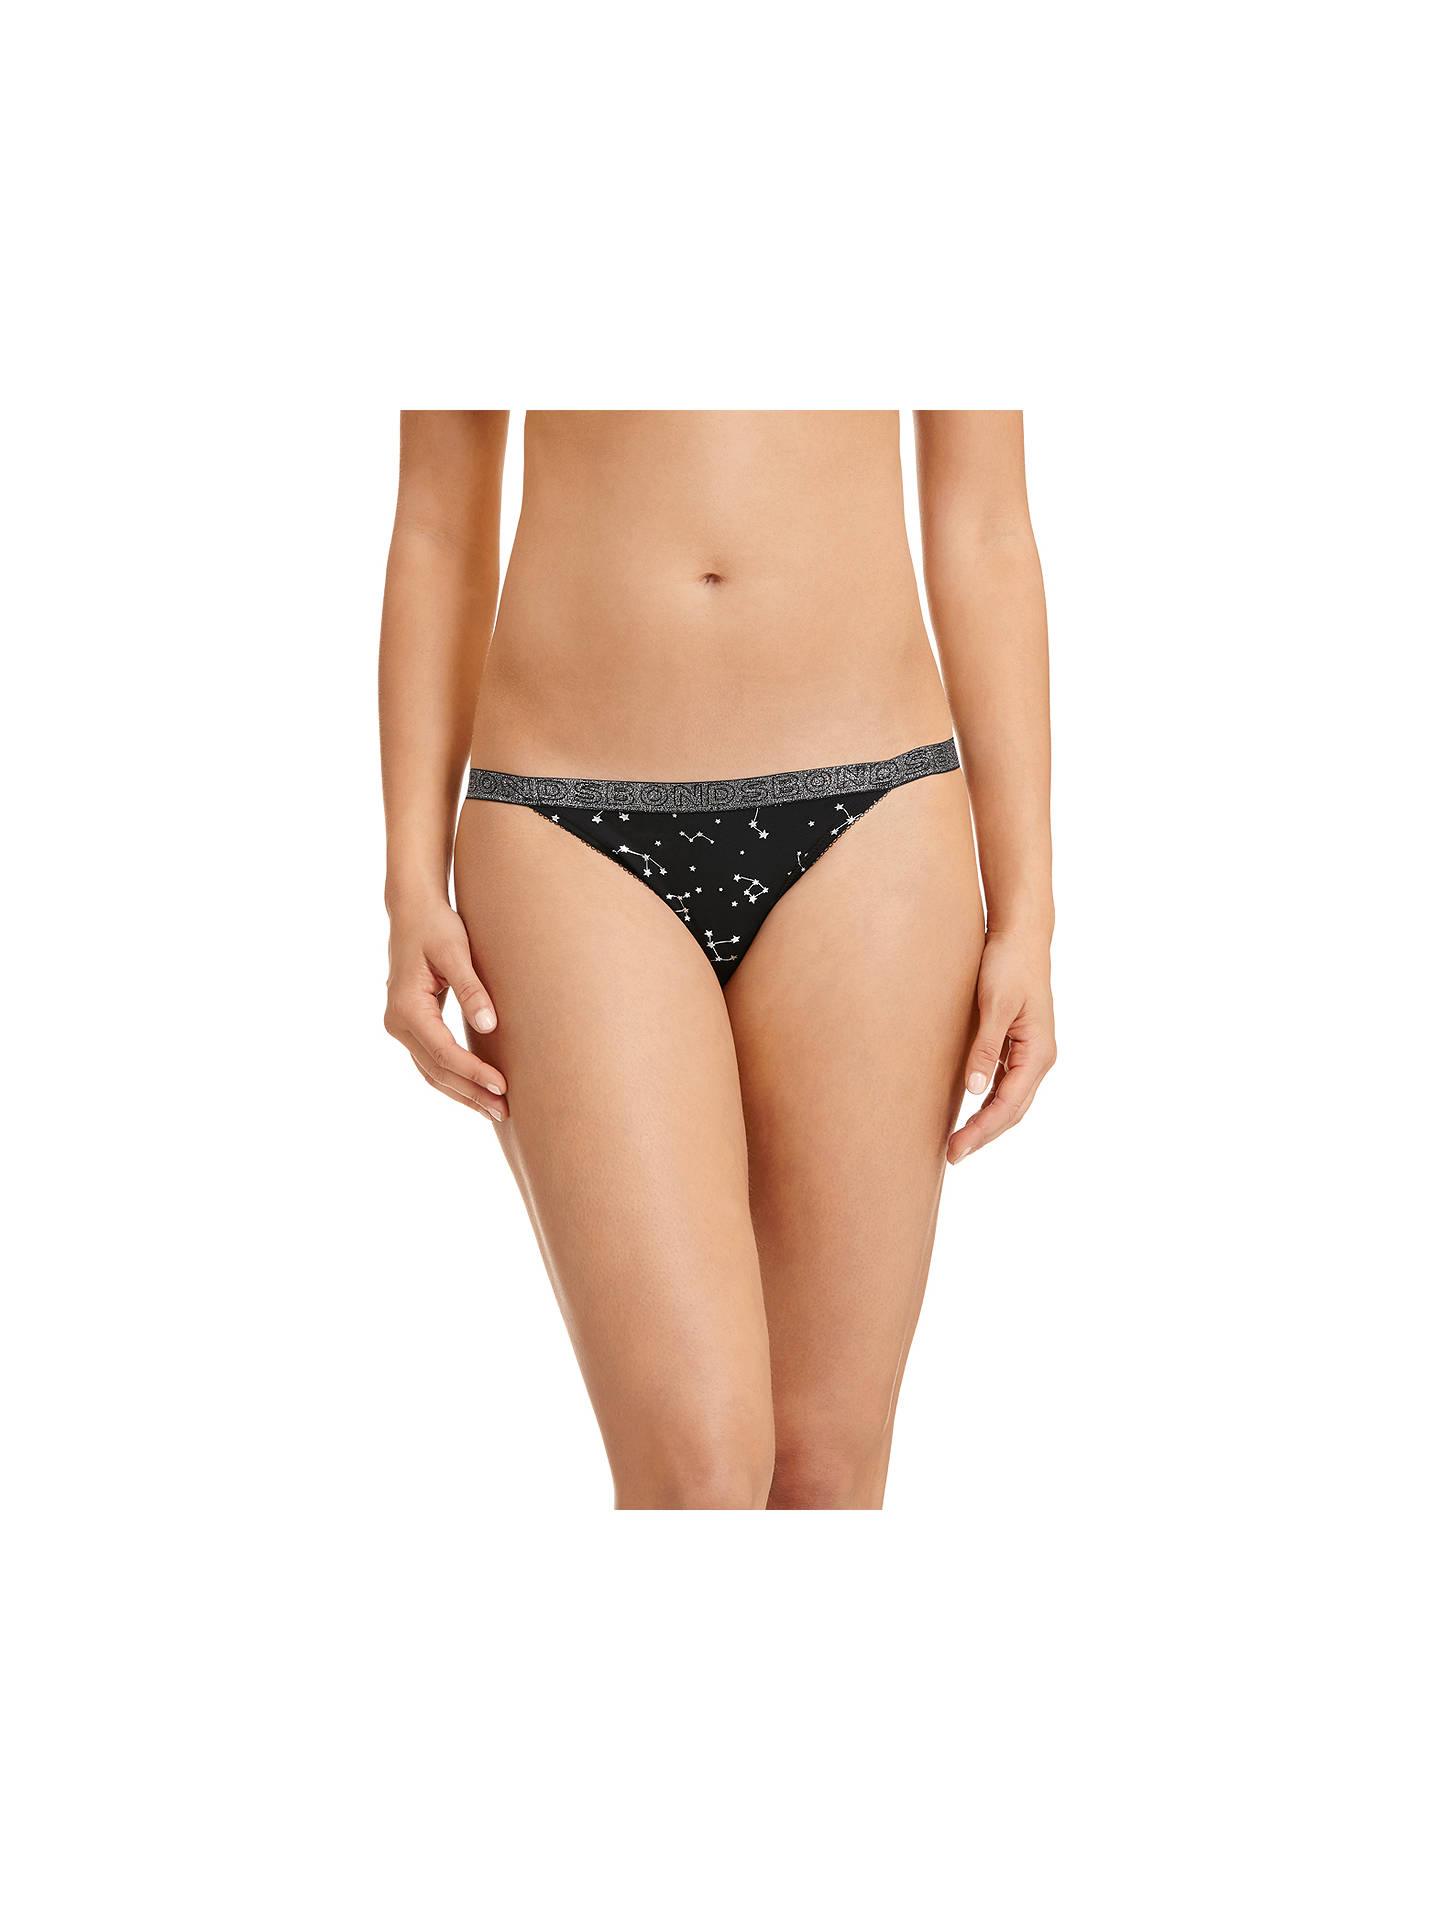 58940b6025 Buy Bonds Lacies Skimpy Bikini Briefs